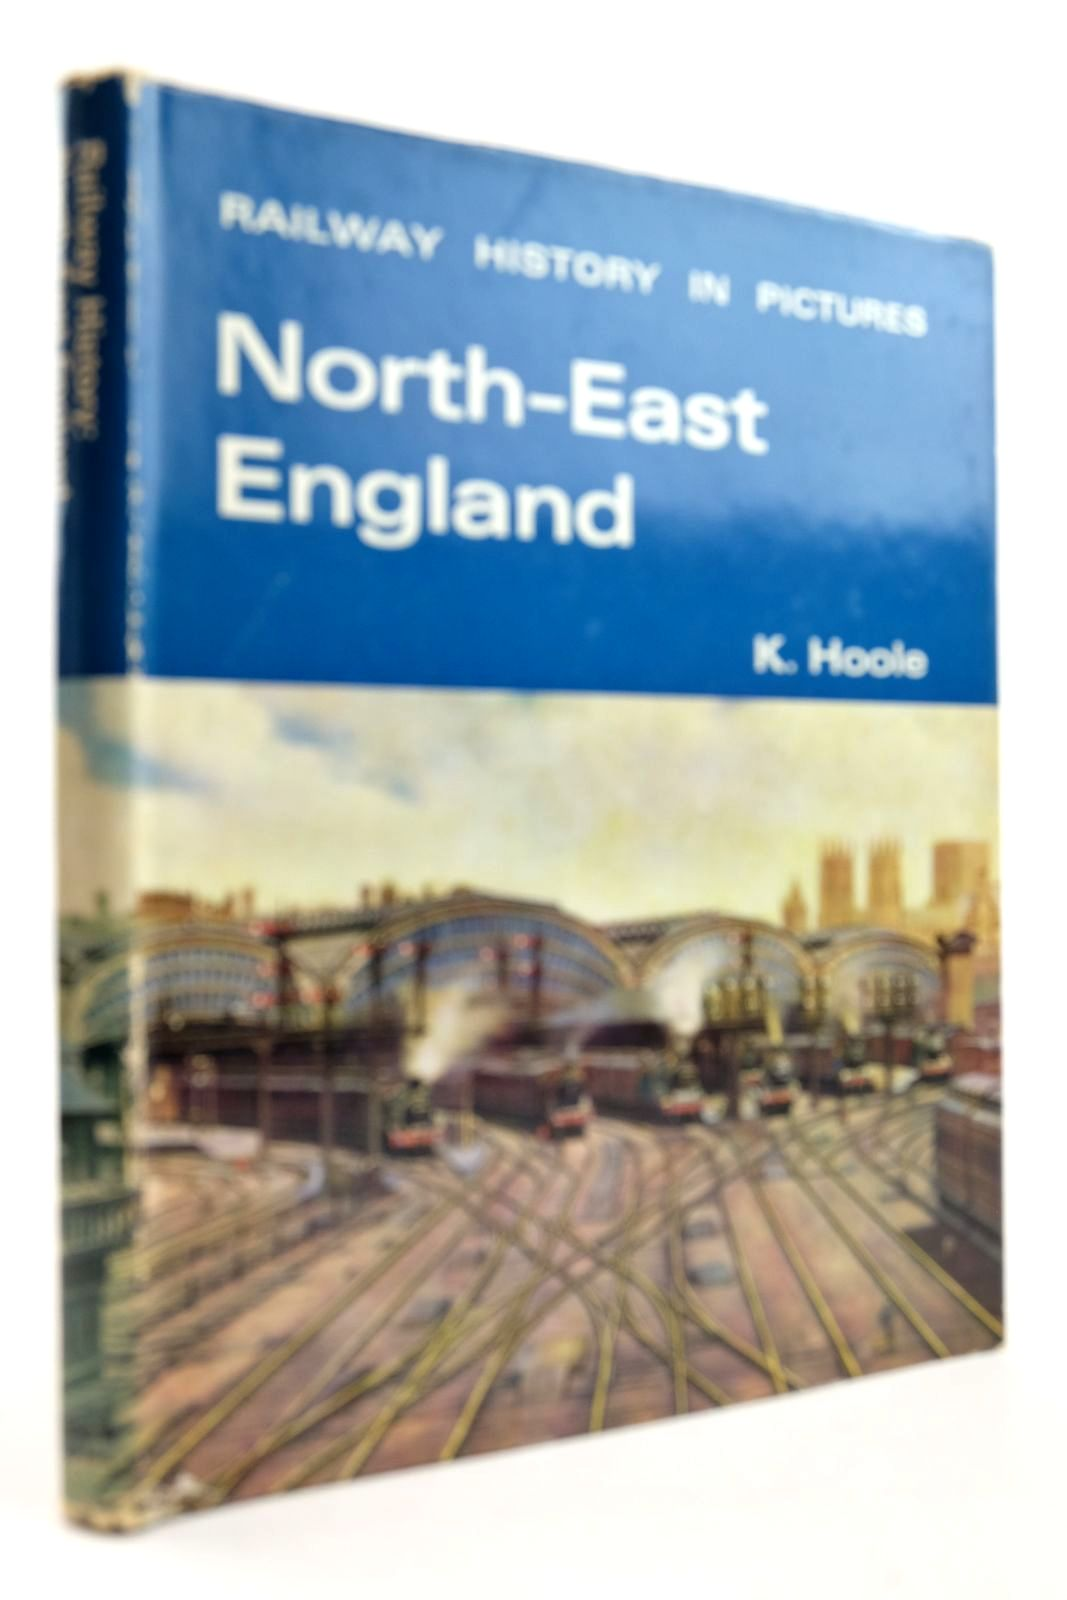 Photo of RAILWAY HISTORY IN PICTURES NORTH-EAST ENGLAND- Stock Number: 2133106